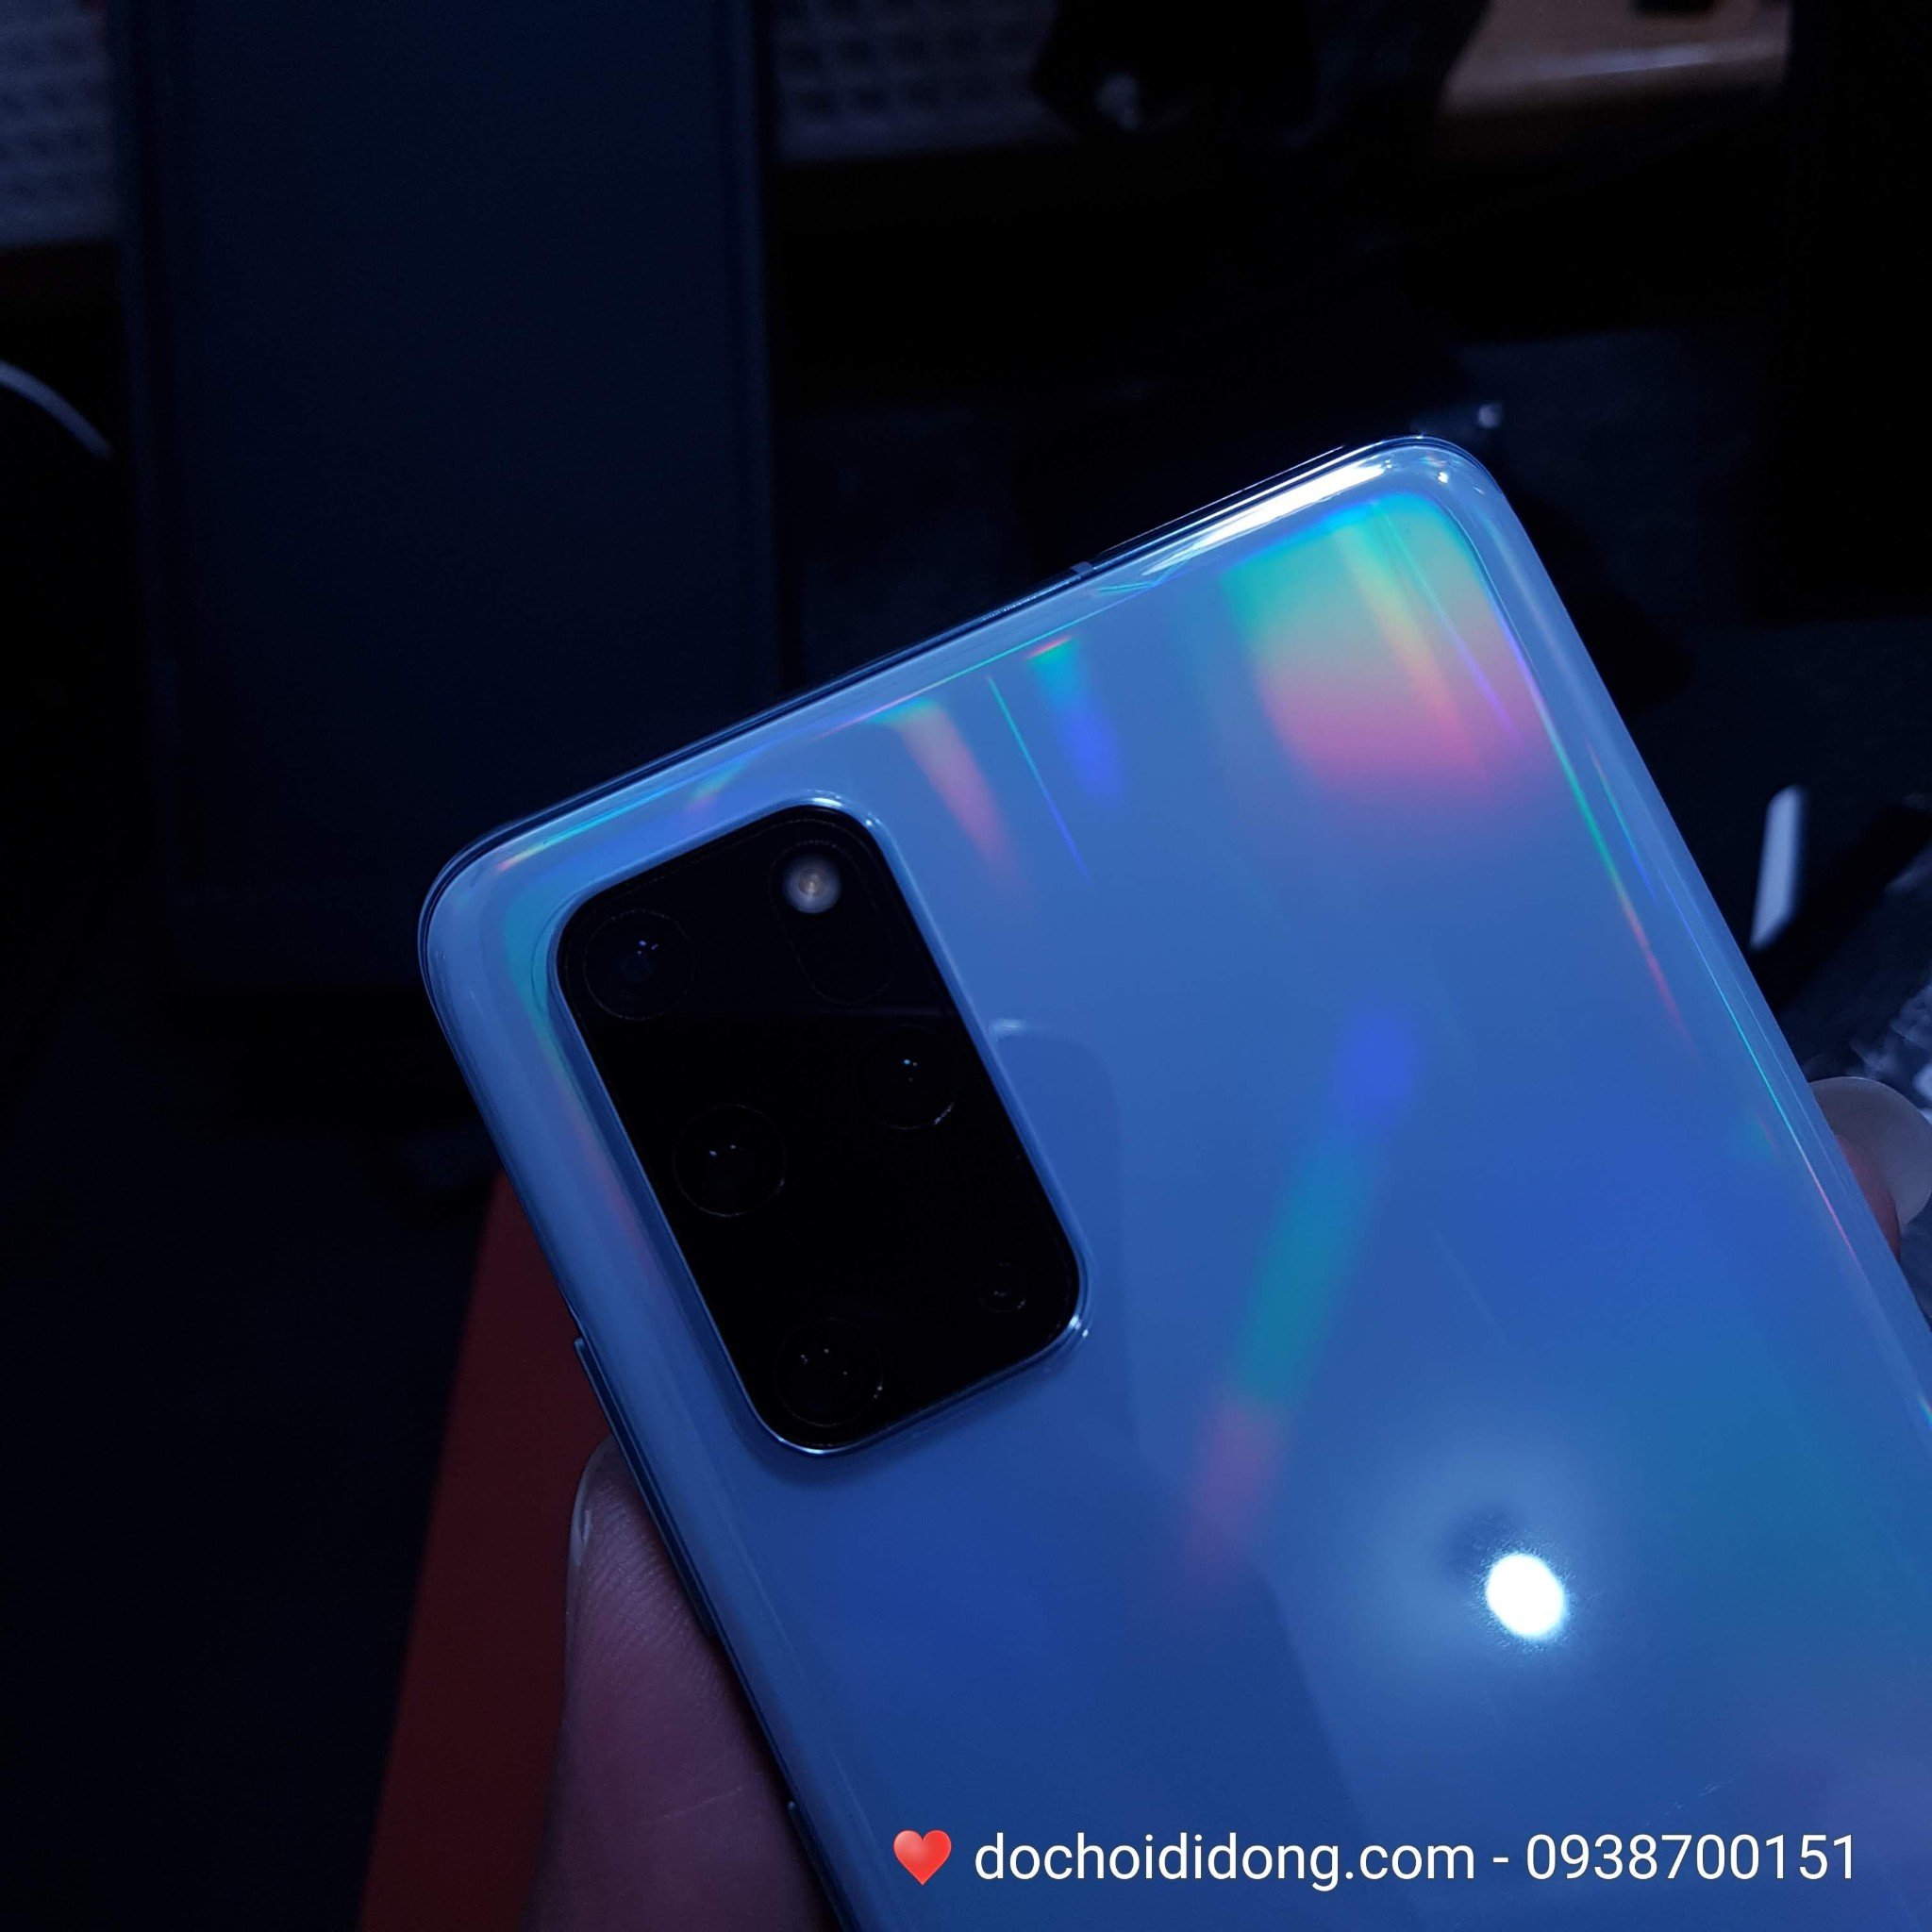 mieng-dan-lung-samsung-s20-s20-plus-s20-ultra